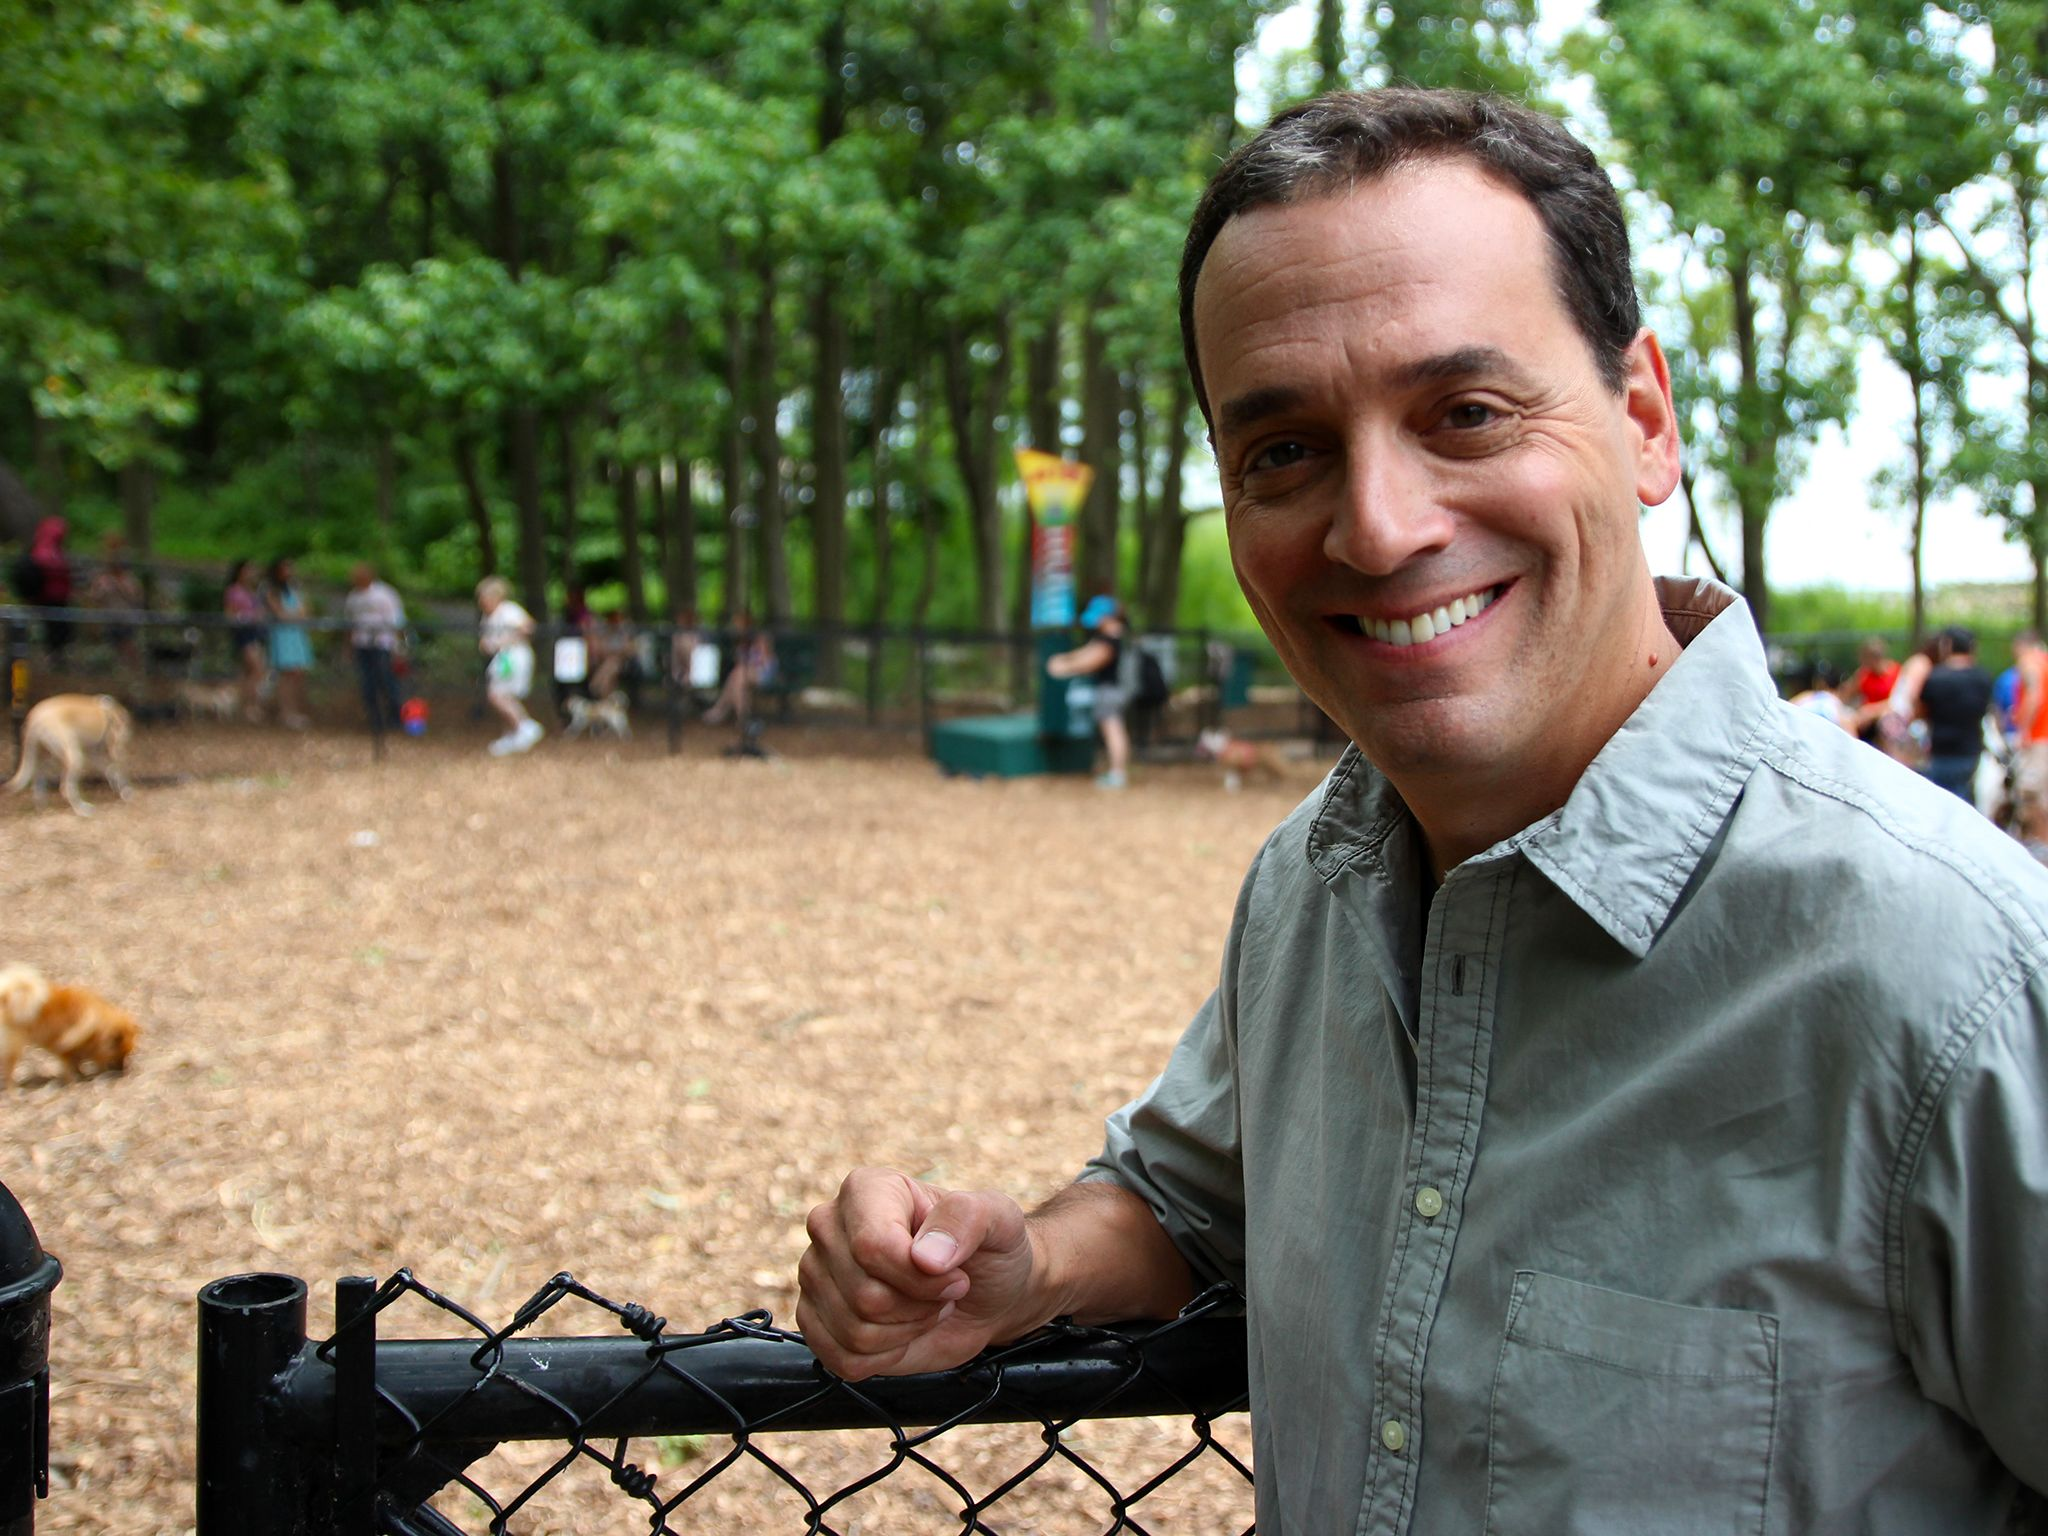 Staten Island, NY, USA: Presenter Daniel Pink heads to a dog park to see how the experiments are ... [Dagens foto - november 2014]